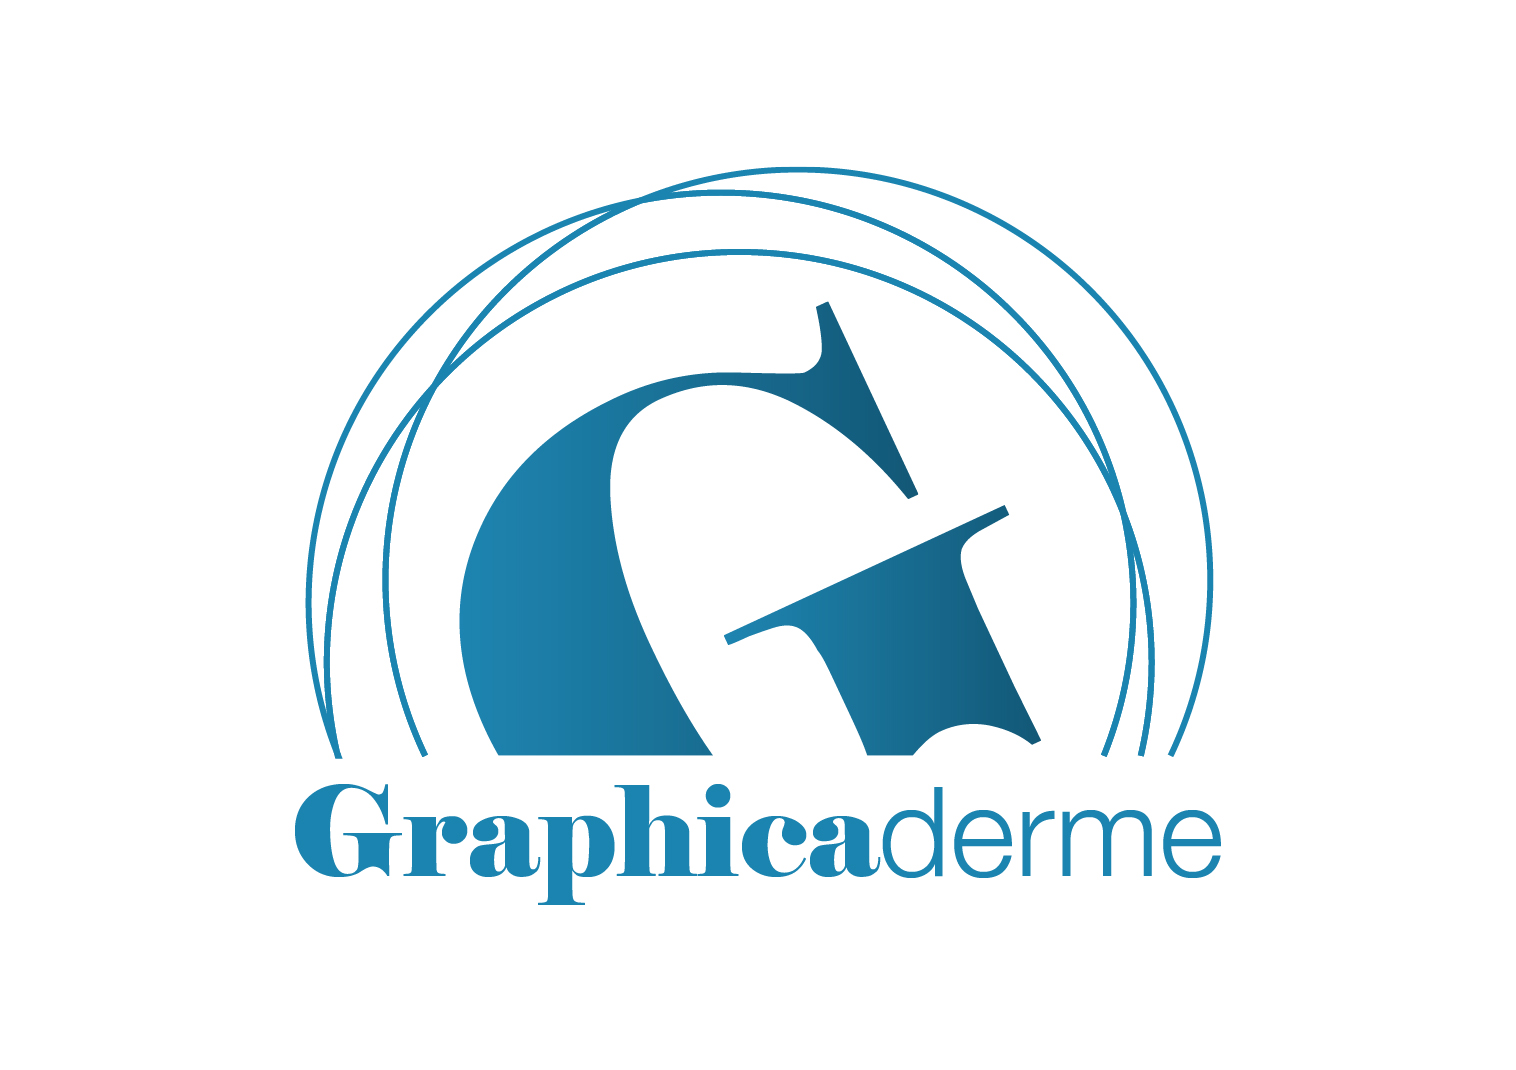 Graphicaderme